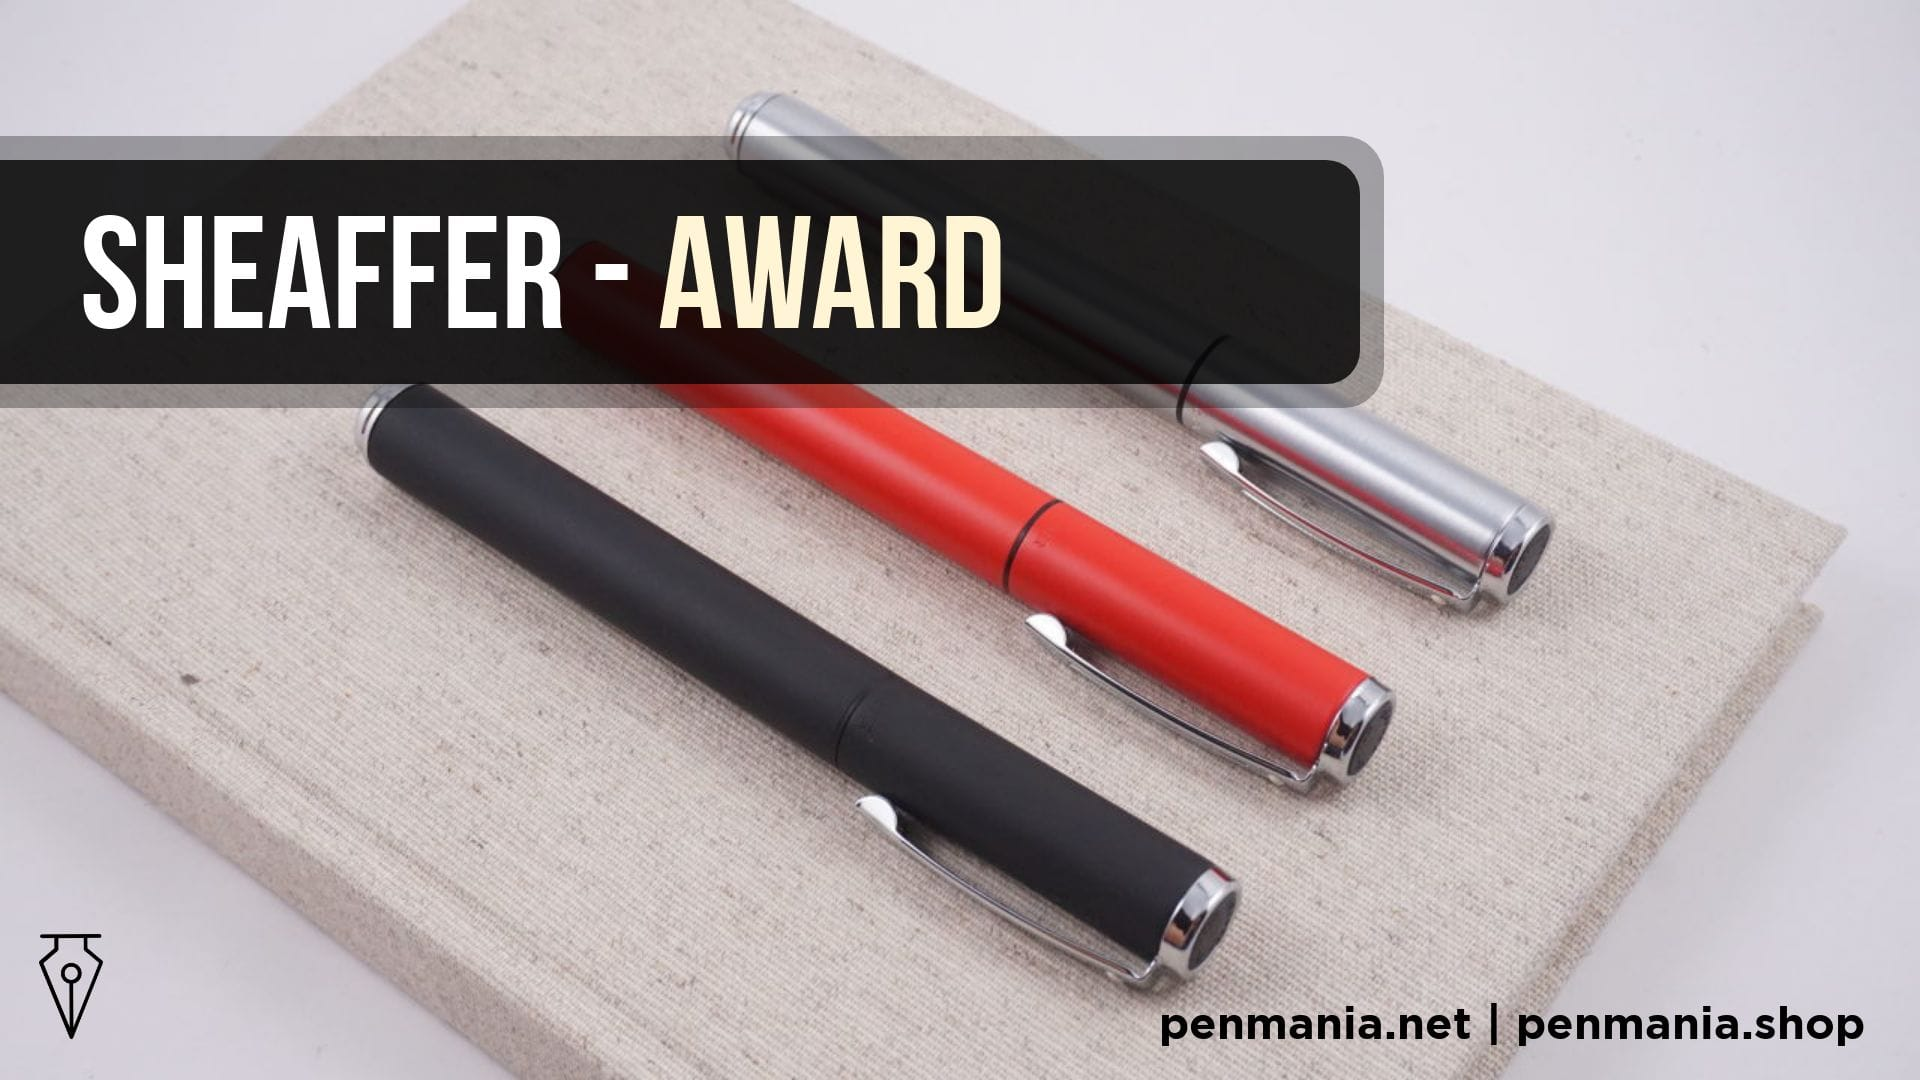 Coperta Video Stilou Sheaffer Award Recenzie Video Penmania Shop